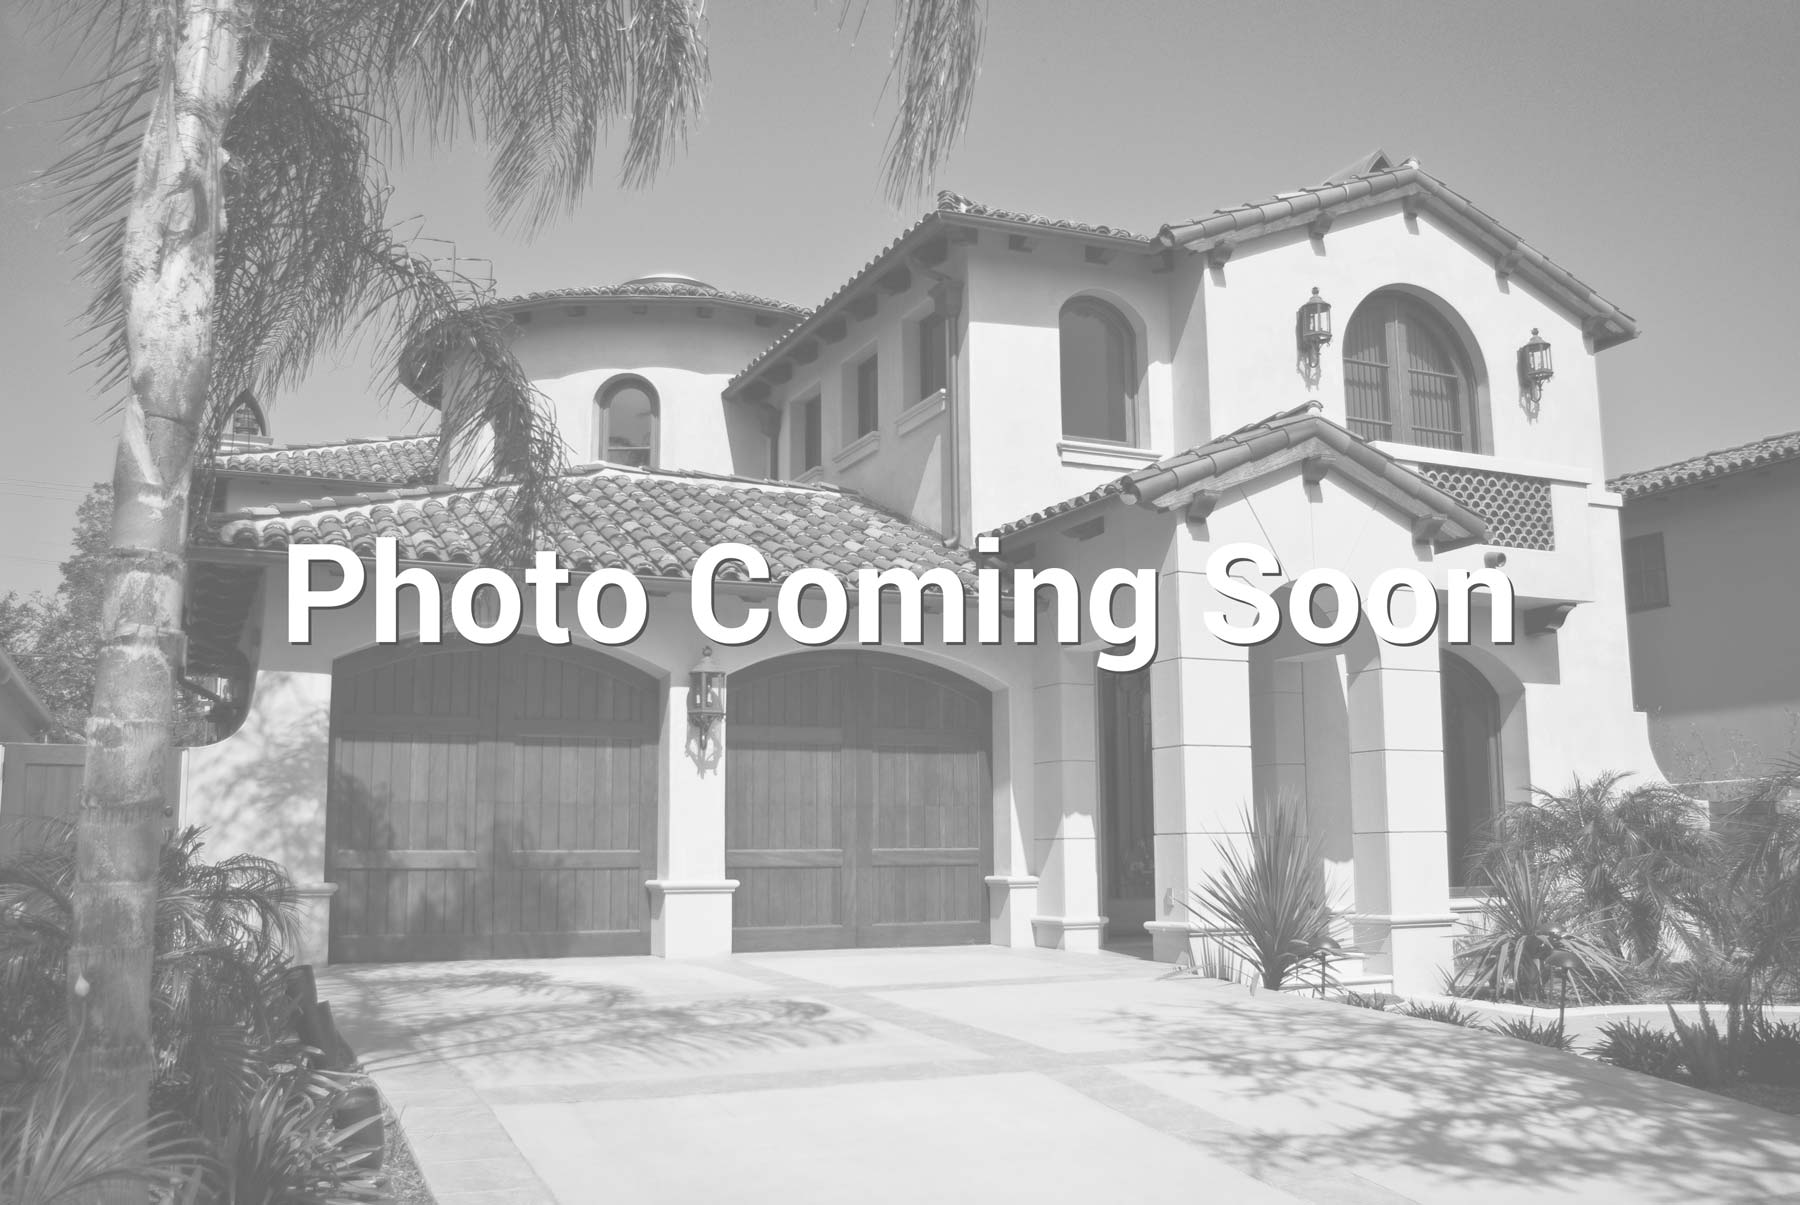 $1,000,000 - 6Br/5Ba - Home for Sale in Warner Estates Lot 1-85, Tempe